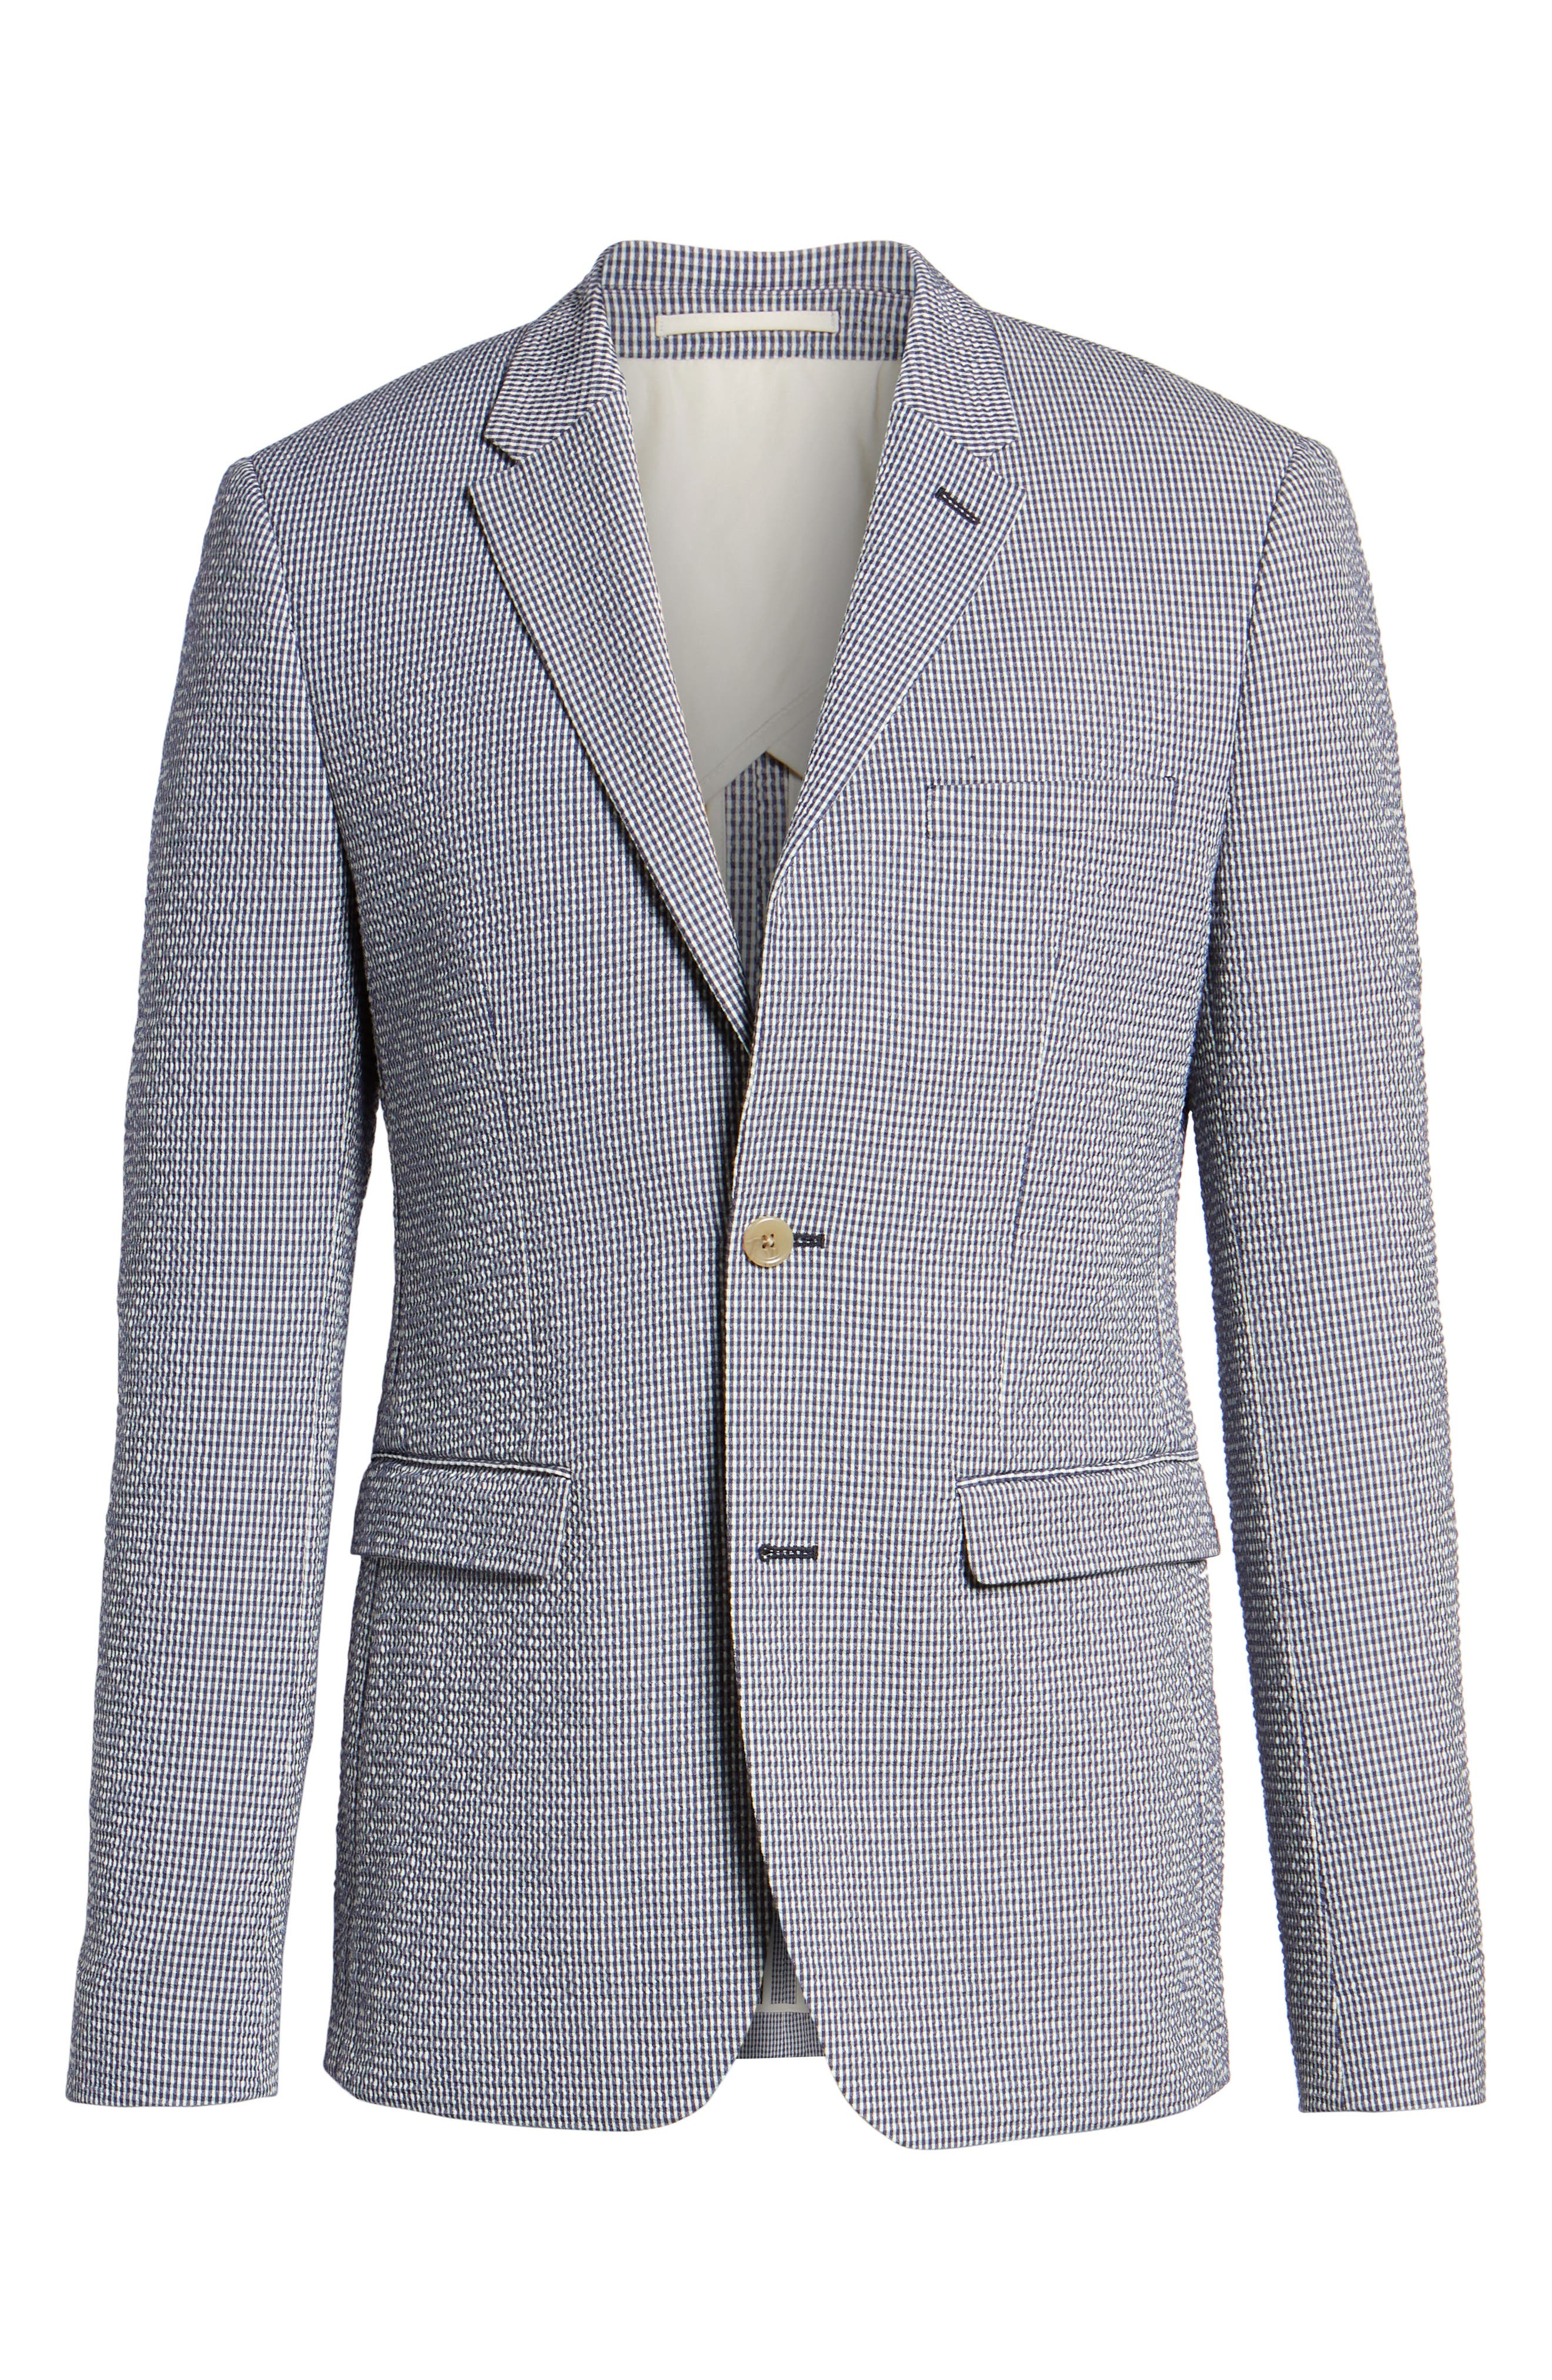 Slim Fit Stretch Seersucker Sport Coat,                             Alternate thumbnail 4, color,                             MARINE BLUE